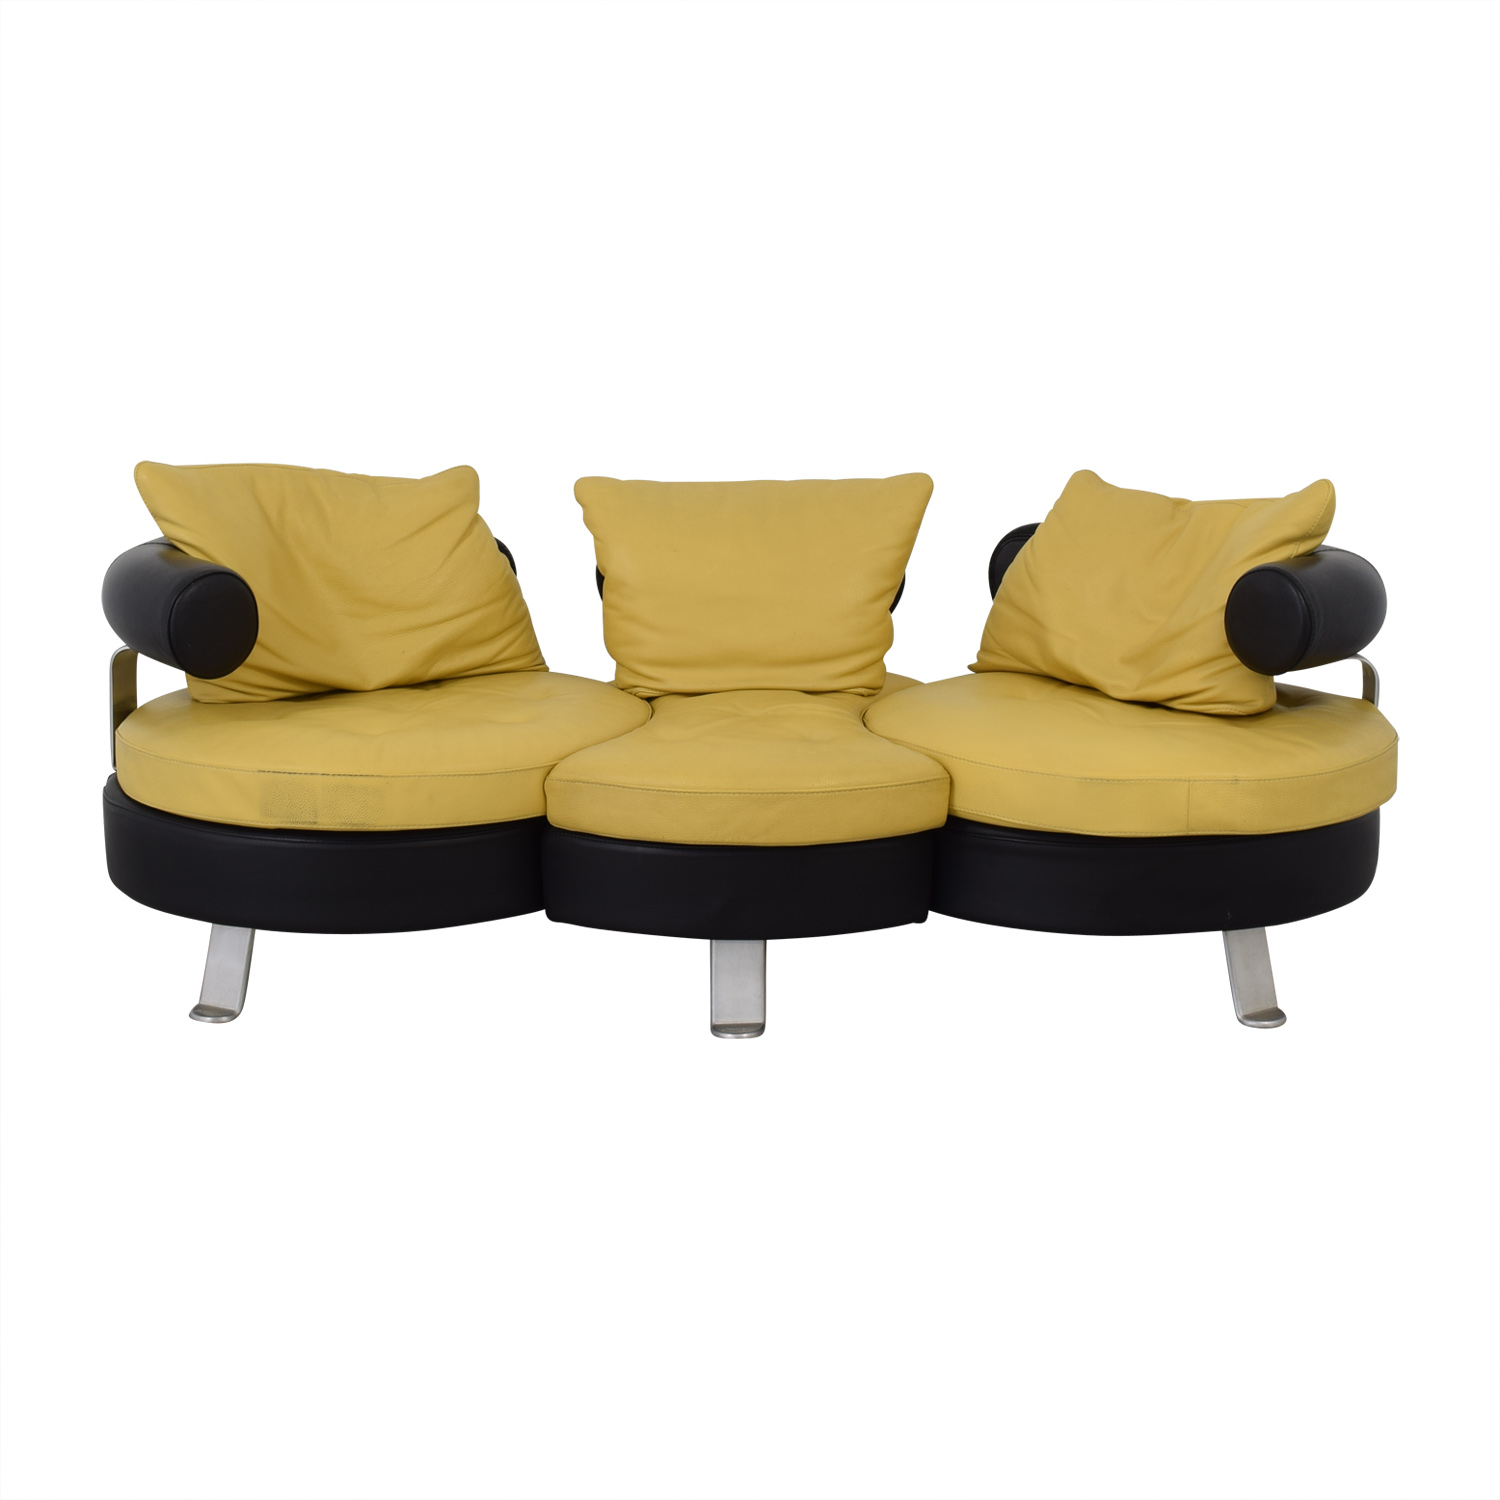 buy Formenti Formenti Divani Contemporary Original Swivel Sofa Formenti Classic Sofas